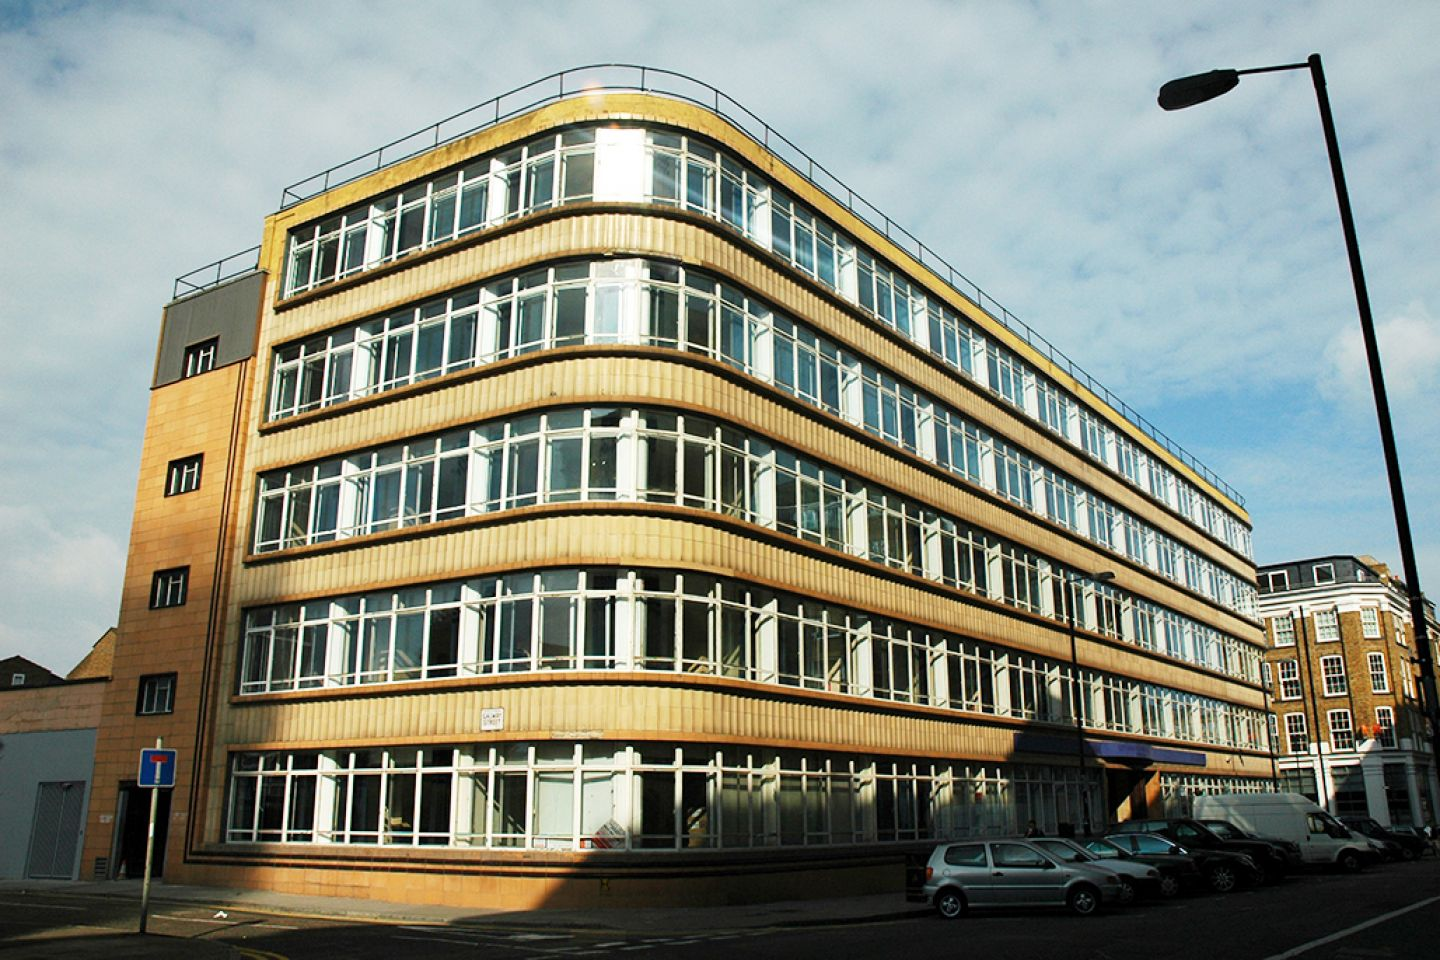 External view of Willen House, showing it's 1940's Bauhaus design with curved corners and wrapping windows.